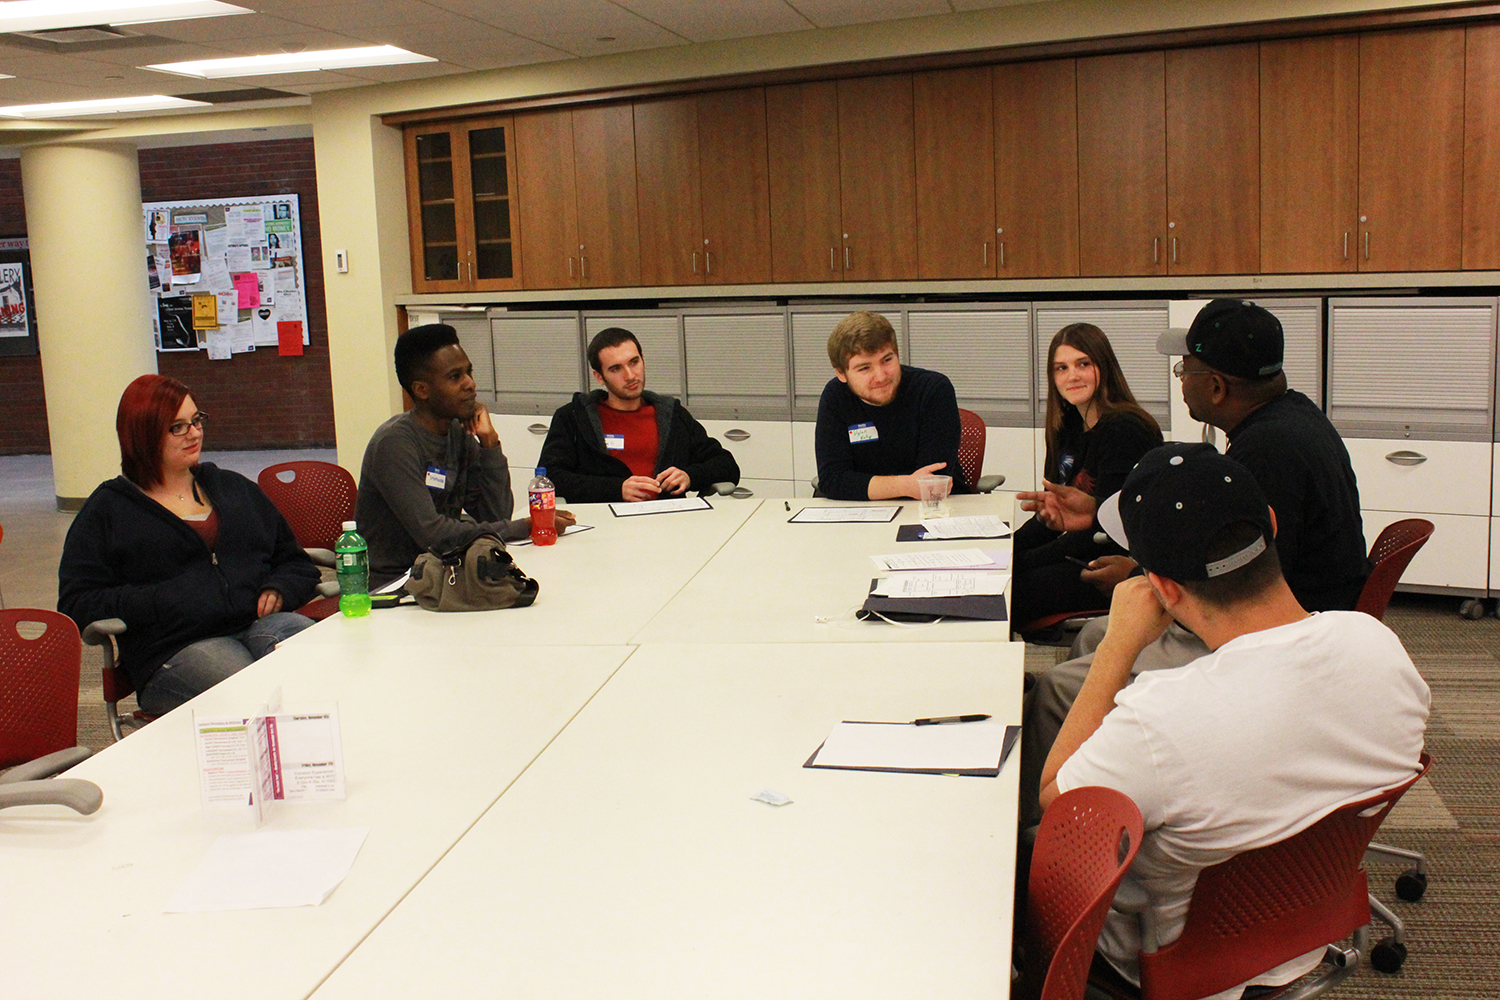 Students share stories to build community